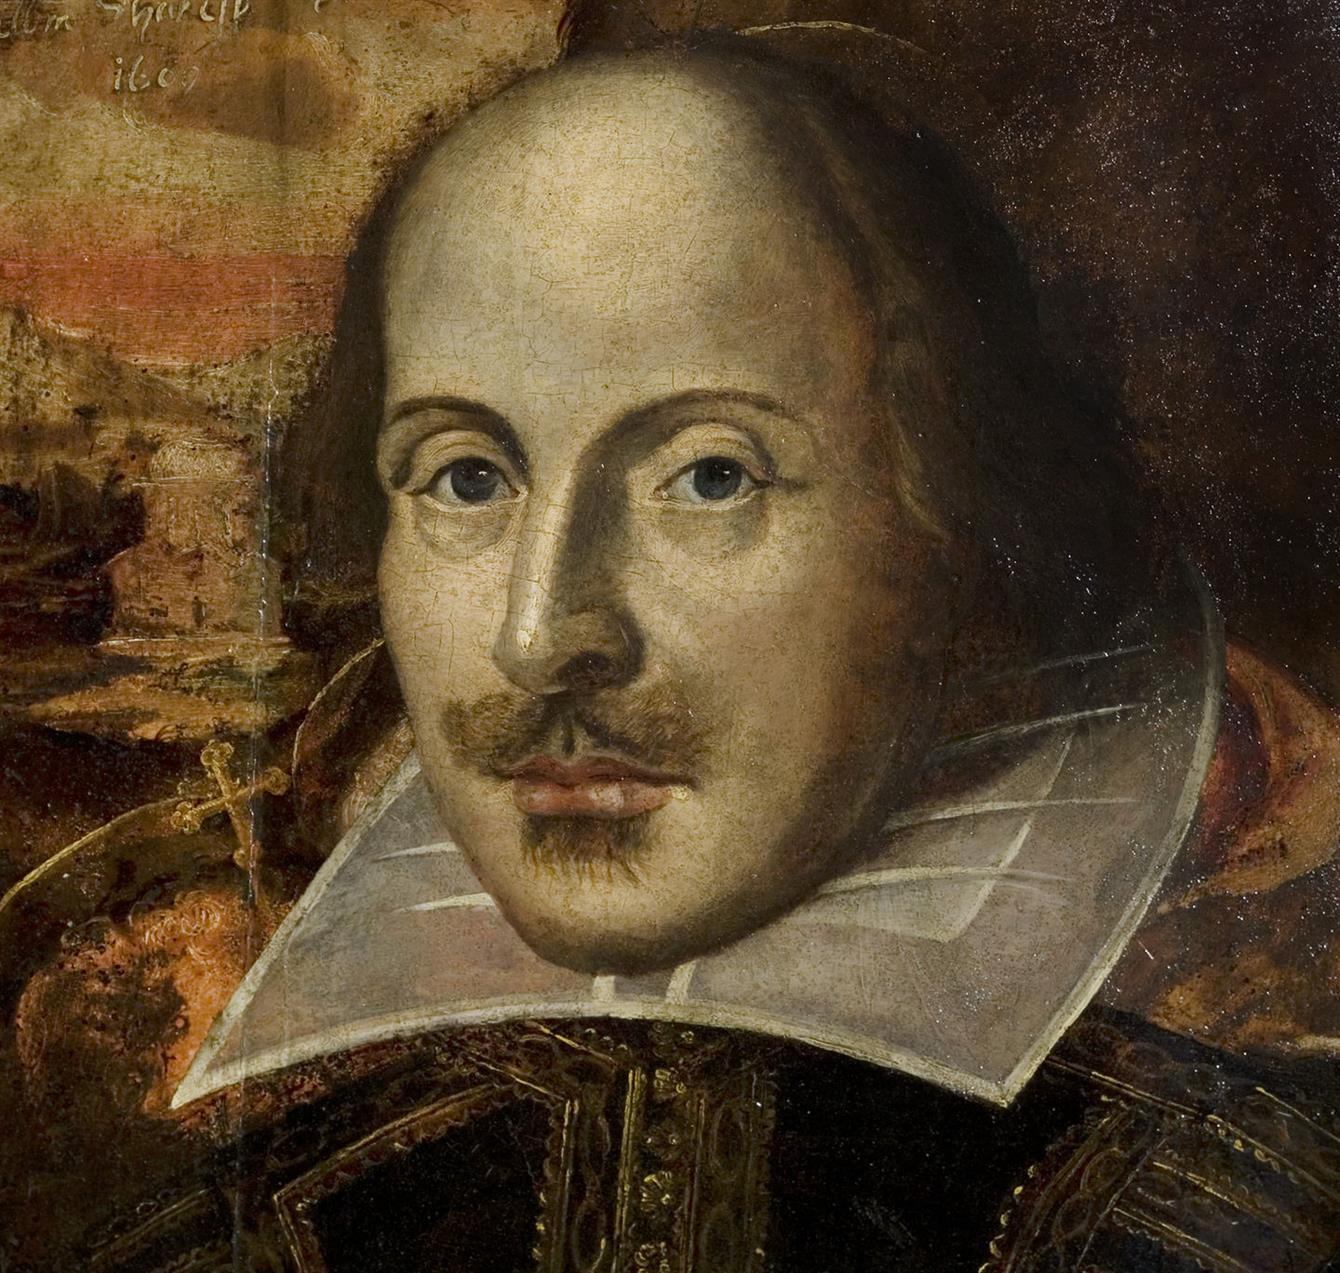 william shakespeare s life and times royal shakespeare company